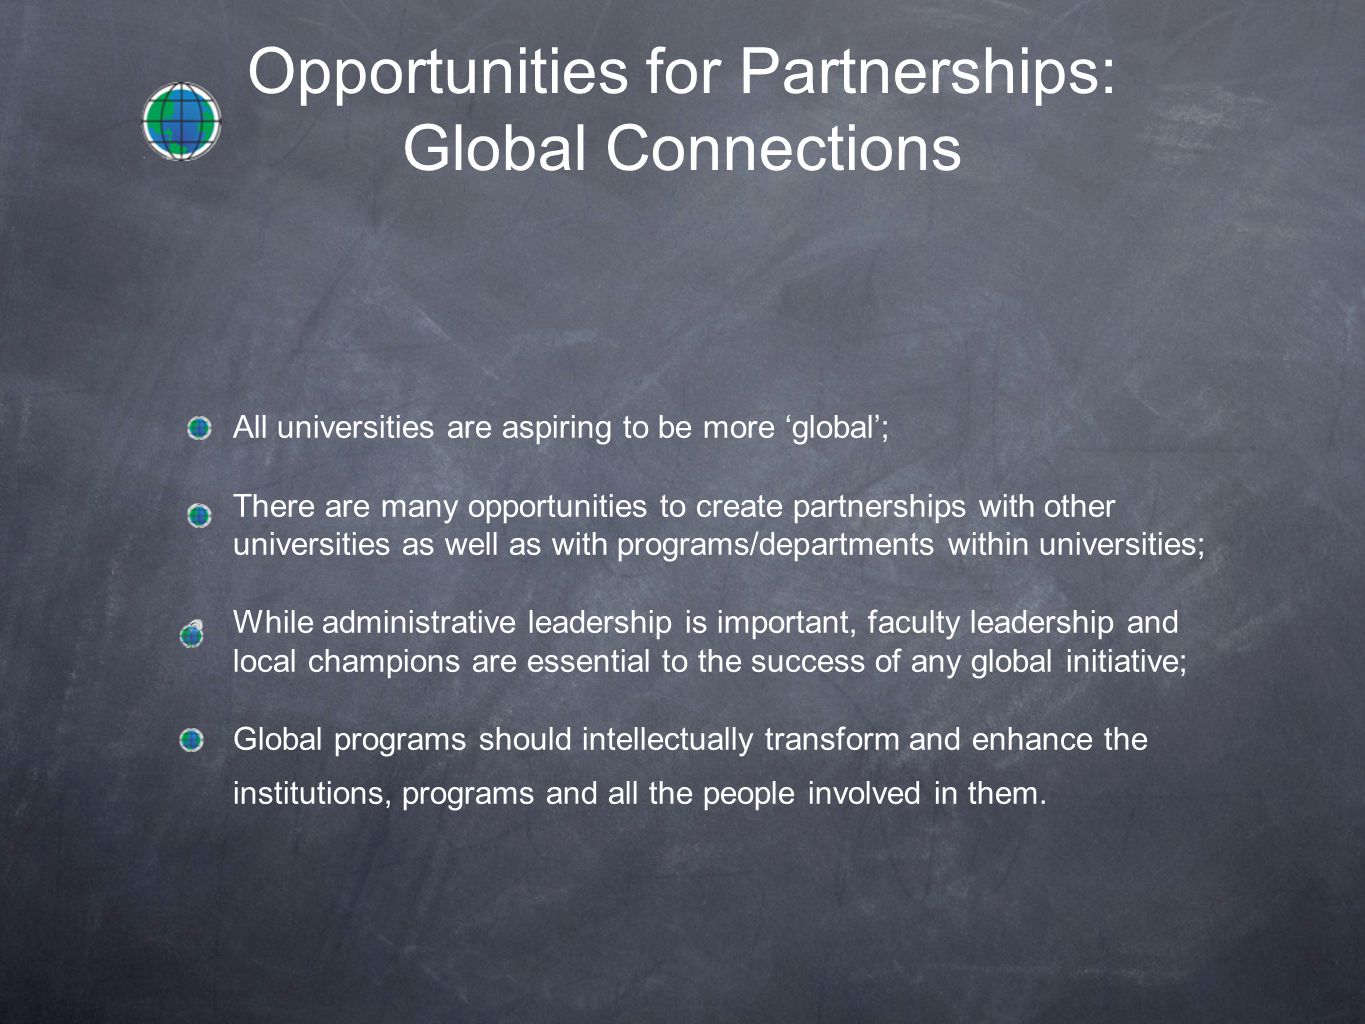 Opportunities for Partnerships: Global Connections All universities are aspiring to be more 'global'; There are many opportunities to create partnerships with other universities as well as with programs/departments within universities; While administrative leadership is important, faculty leadership and local champions are essential to the success of any global initiative; Global programs should intellectually transform and enhance the institutions, programs and all the people involved in them.